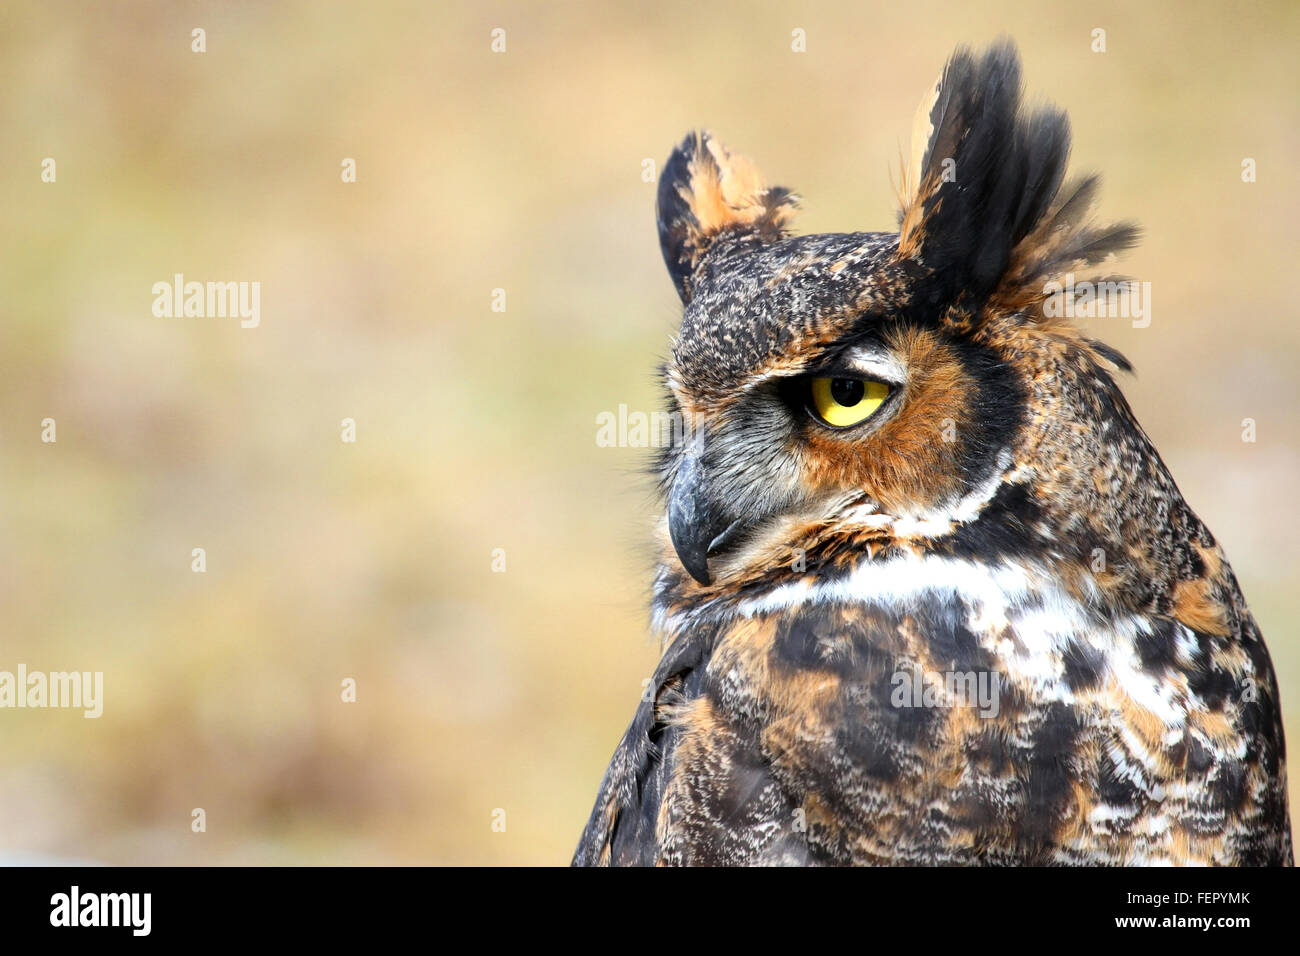 Great horned owl face side view